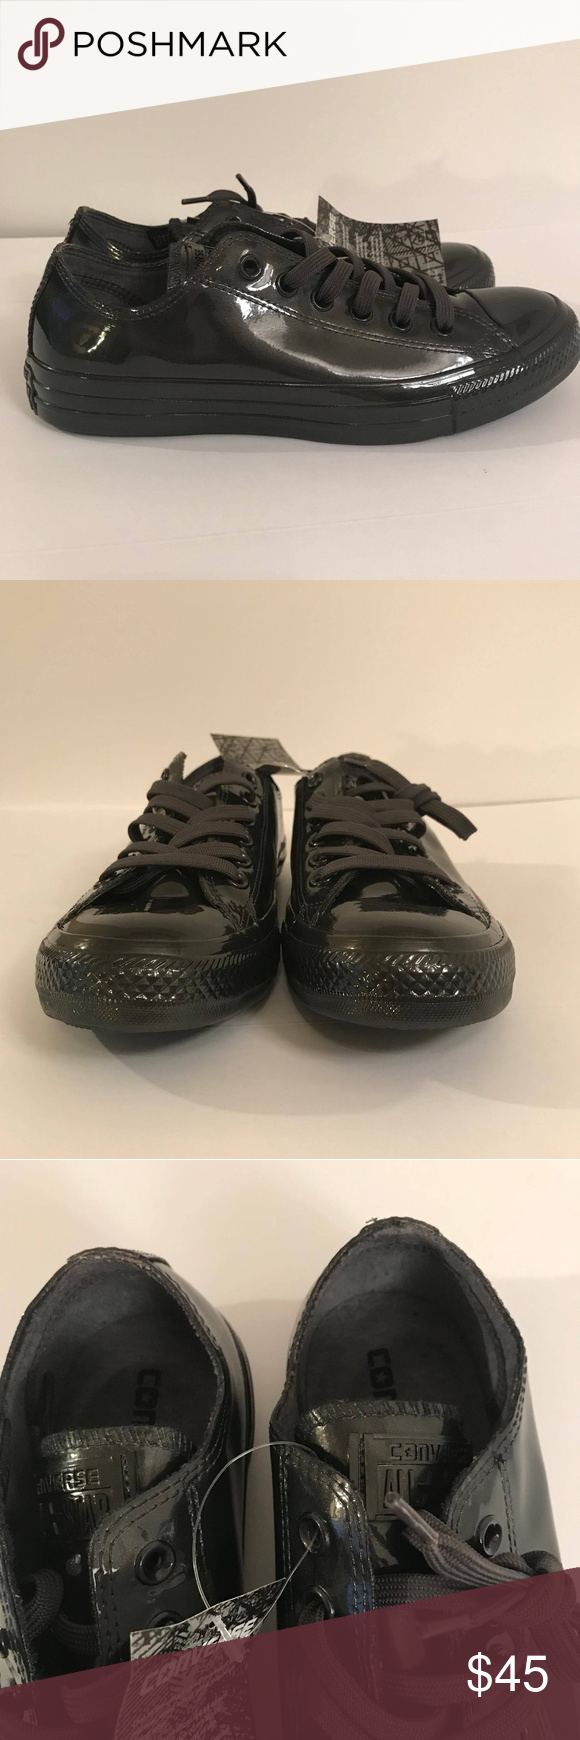 0849700b34db Converse All Star Metallic Rubber OX Black Pearl Pair of brand new Rubber  Converse Chuck Taylor. No original box. Metallic Rubber